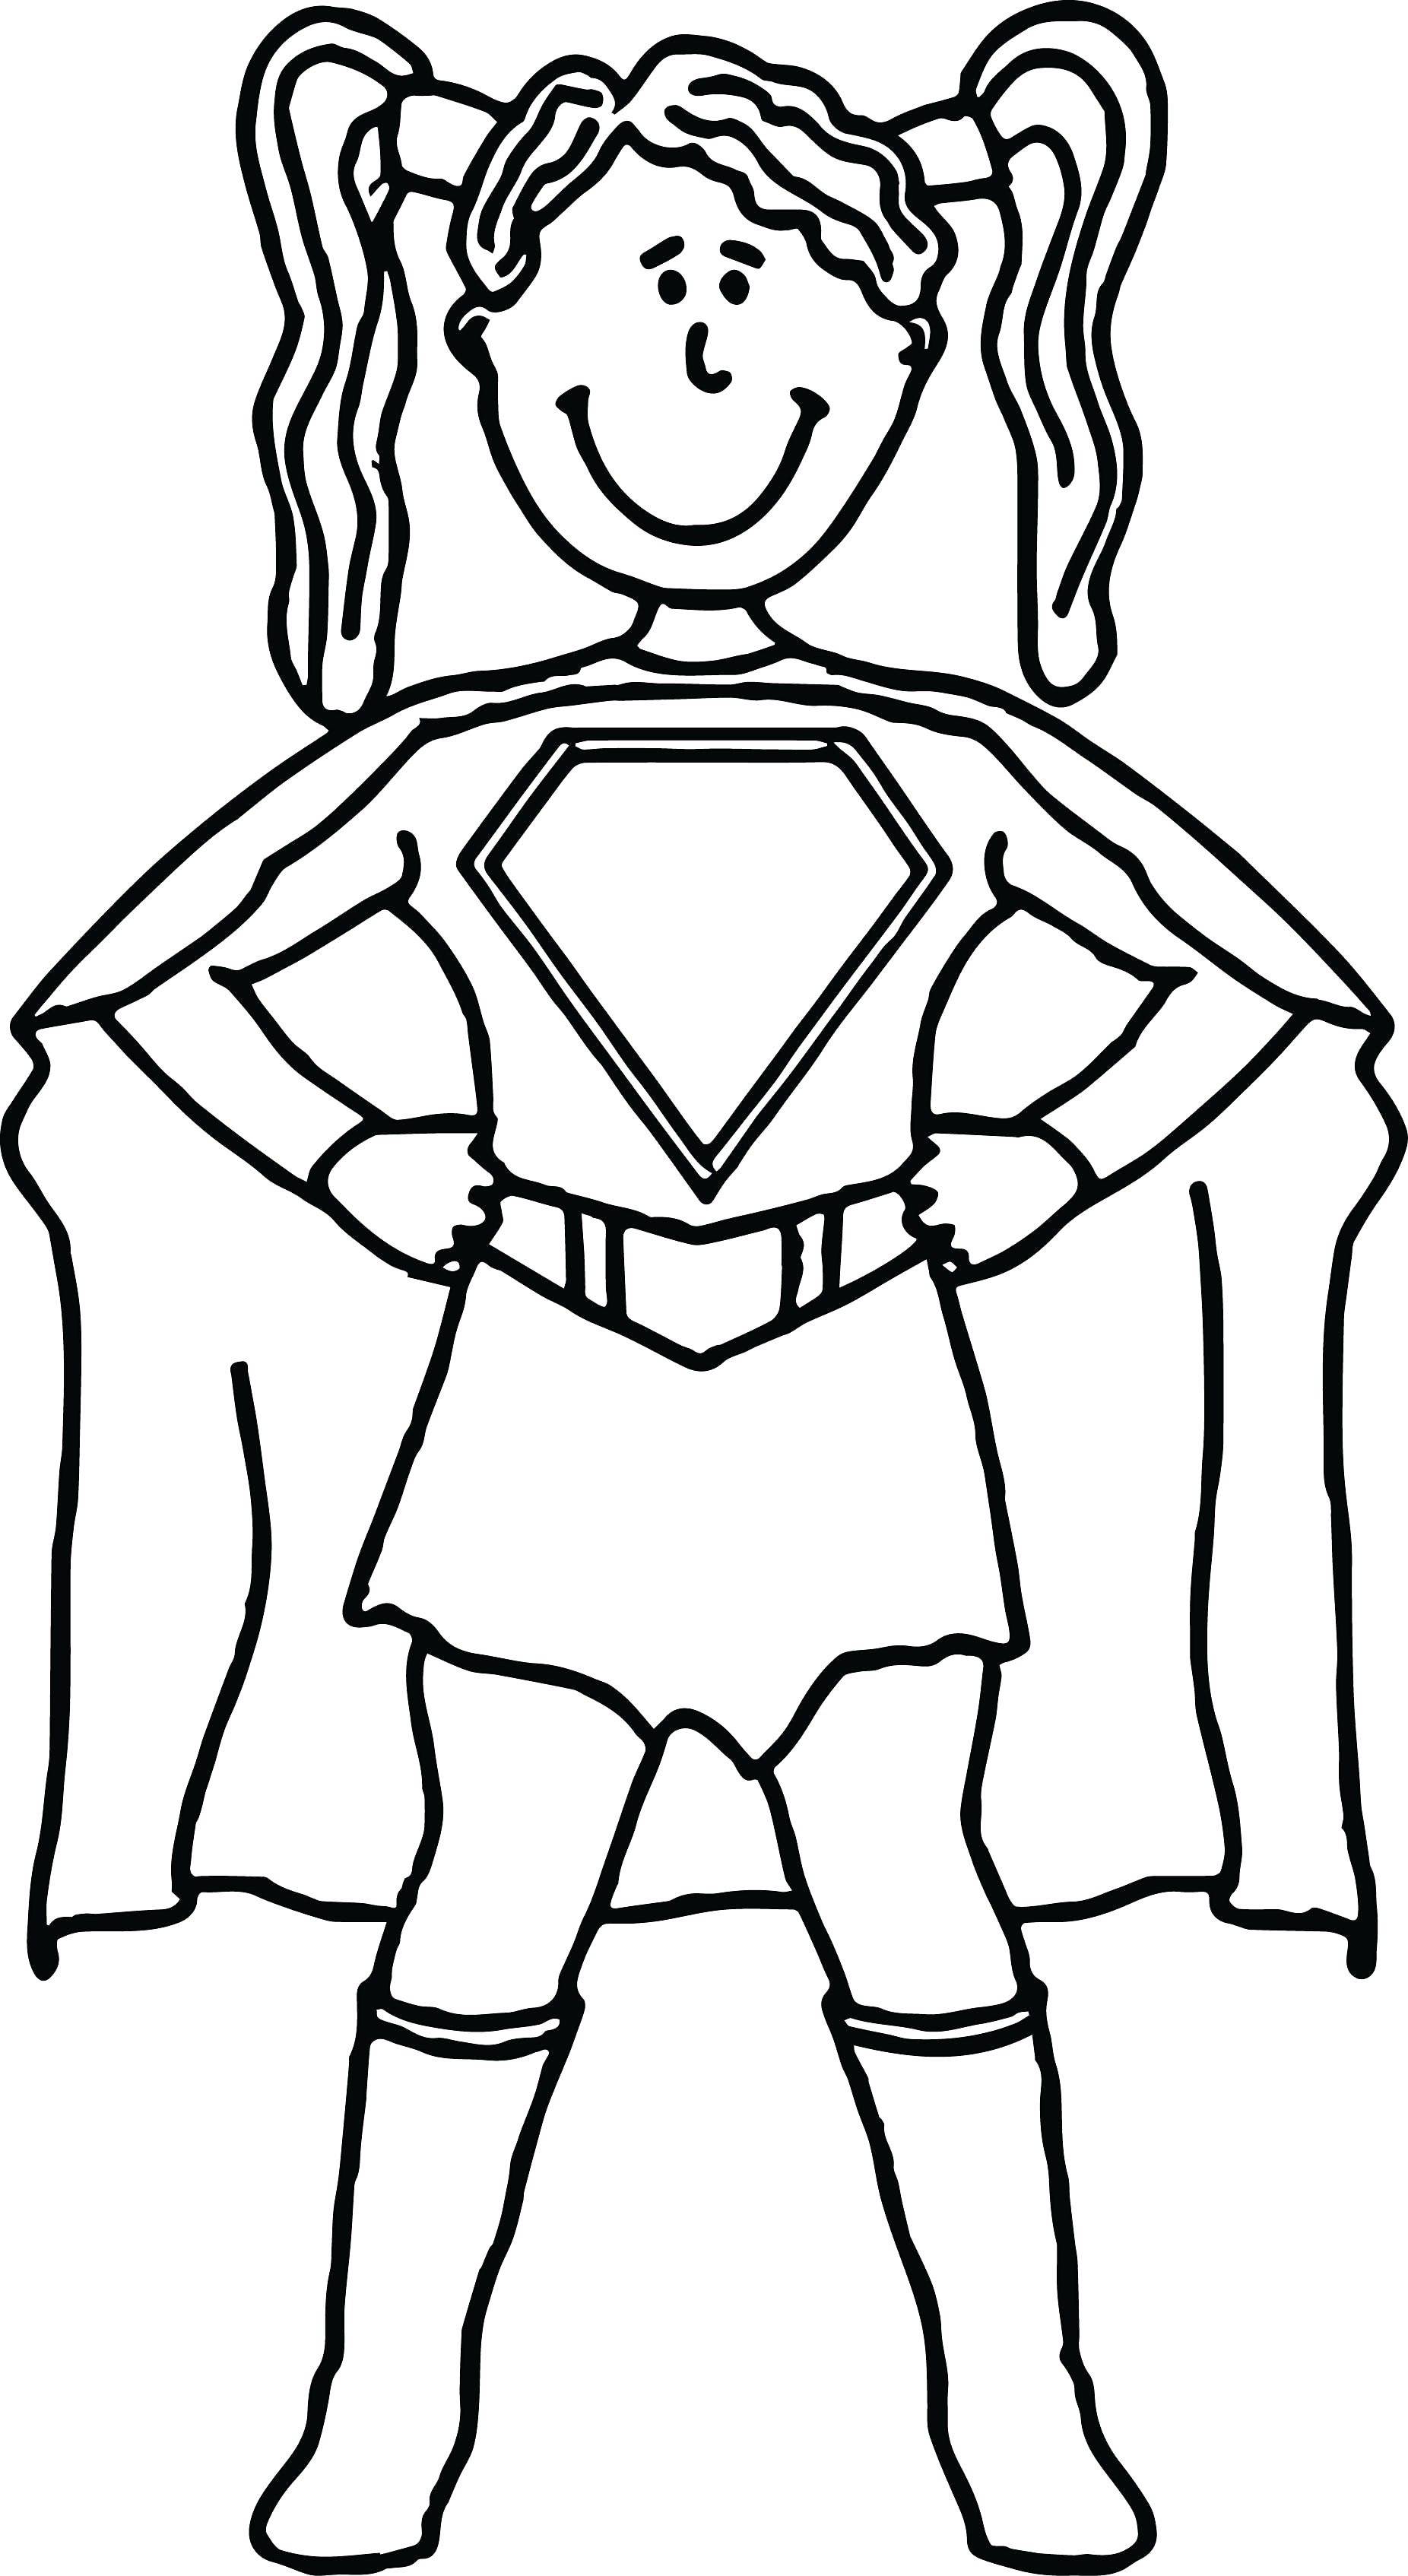 1852x3388 Female Superhero Coloring Pages Freecolorngpages Co Best Of Qqa Me